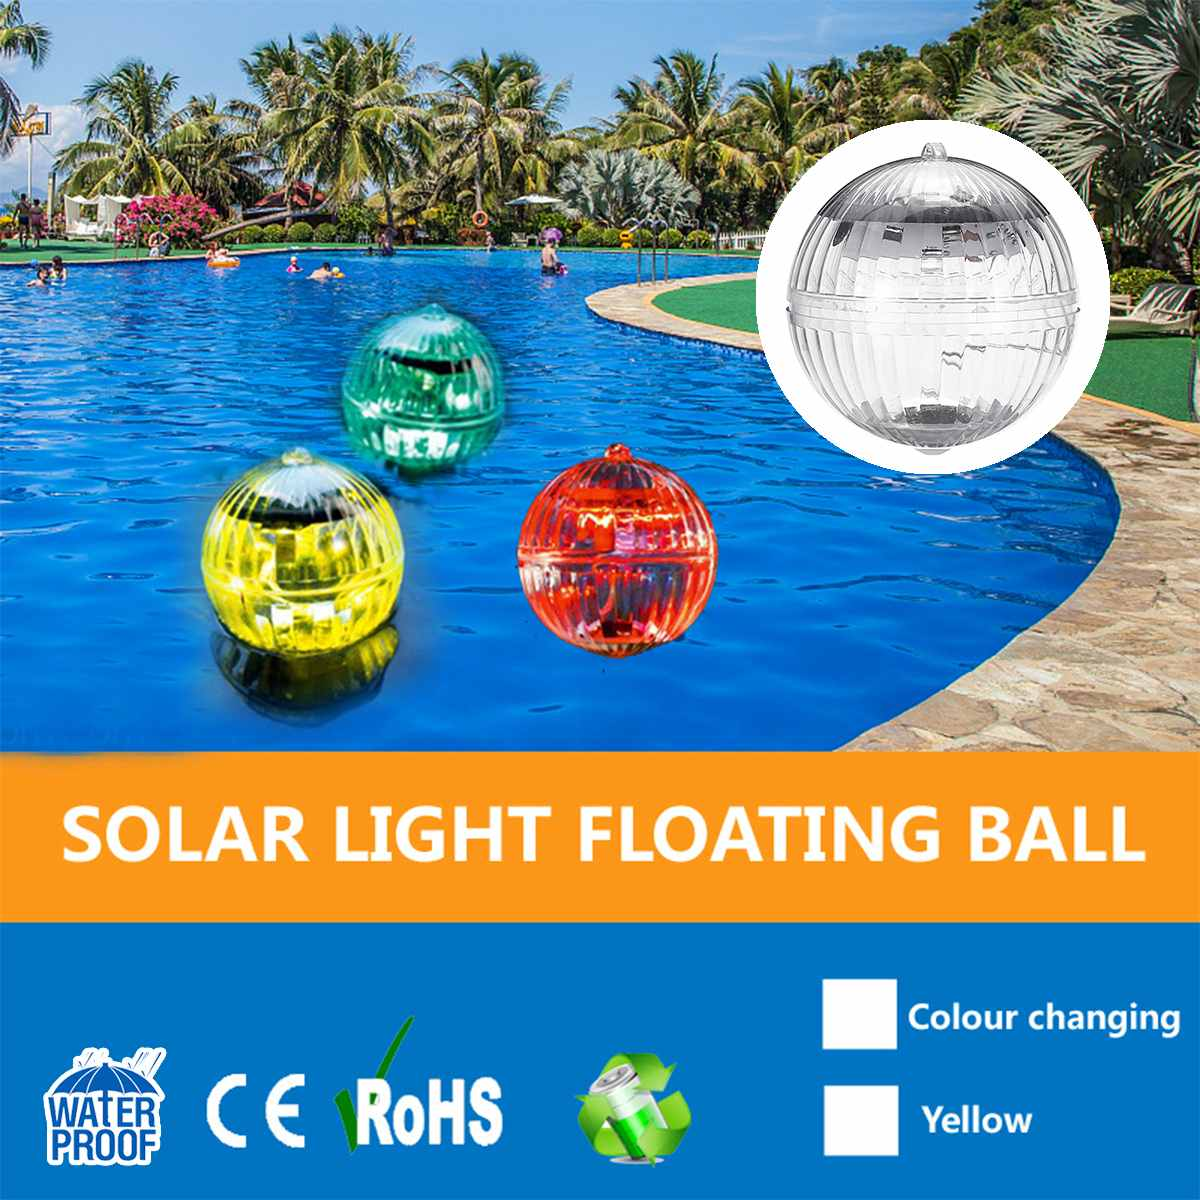 LED Solar Light Outdoor Floating Ball Color Changing Solar Panel LED Lamp Pool Light Swimming Pool Accessories New Arrival 2019